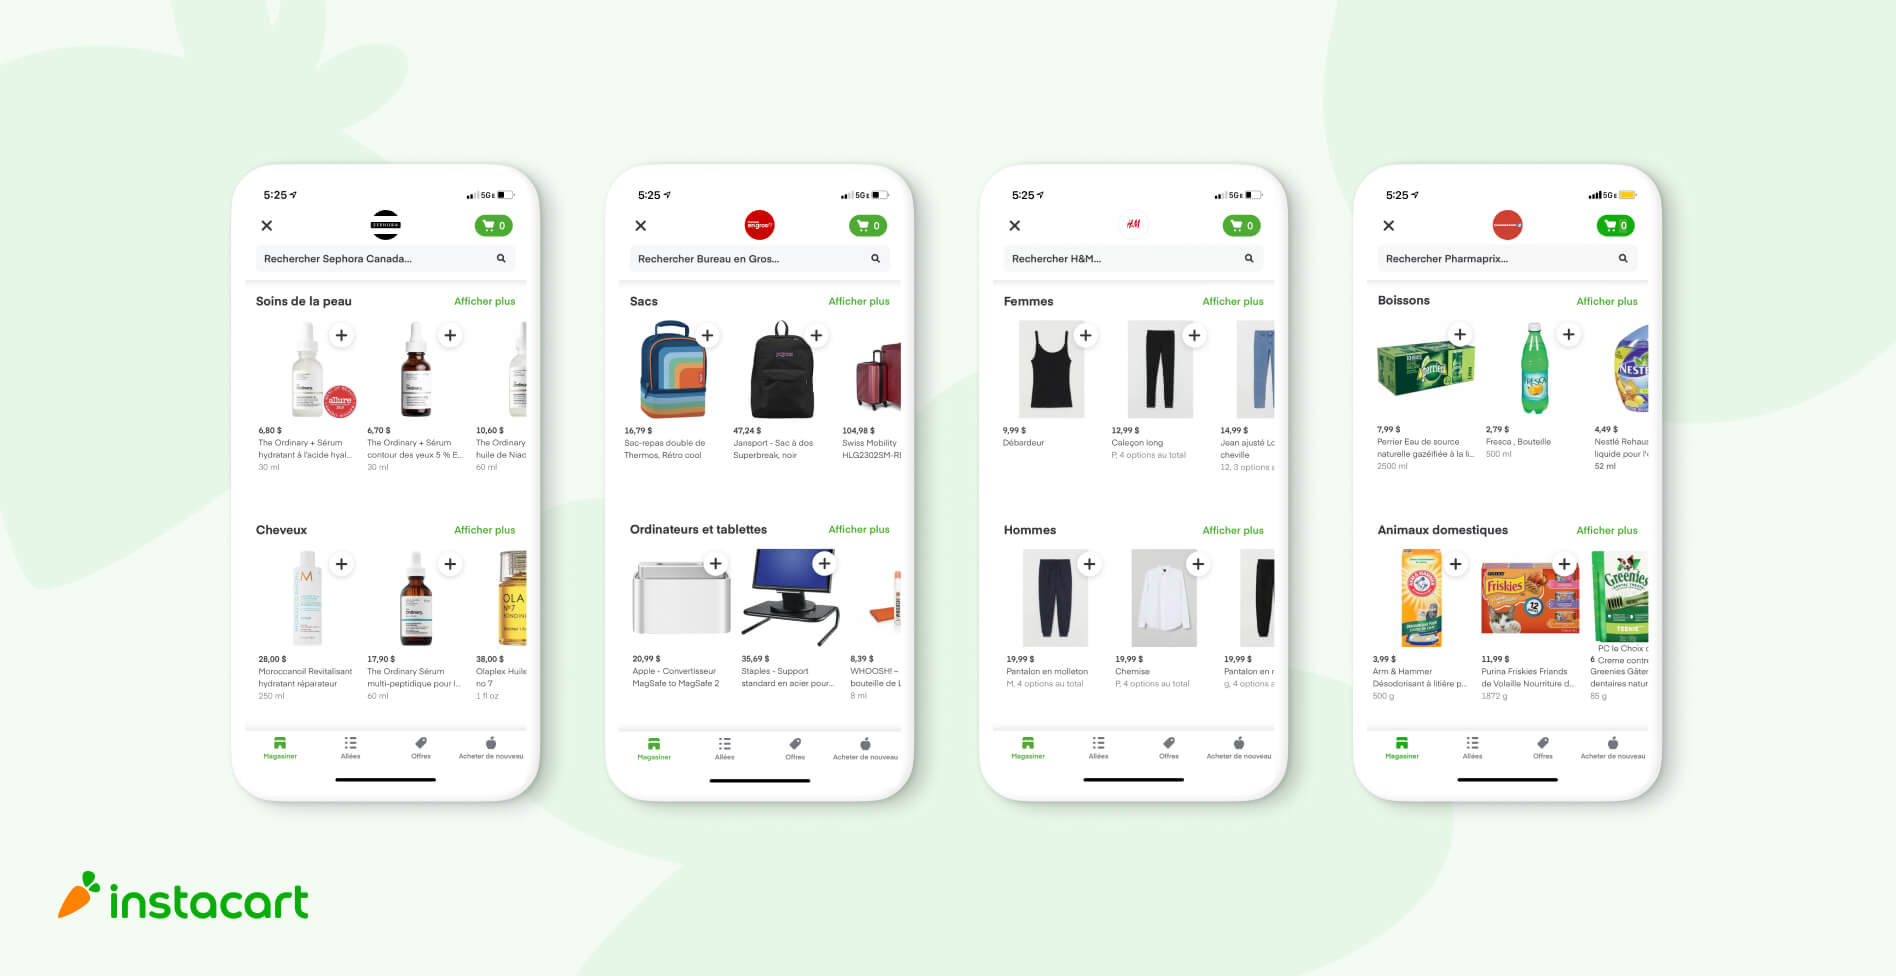 Instacart Announces Expansion Across Quebec to Reach 90% of Canadian Households